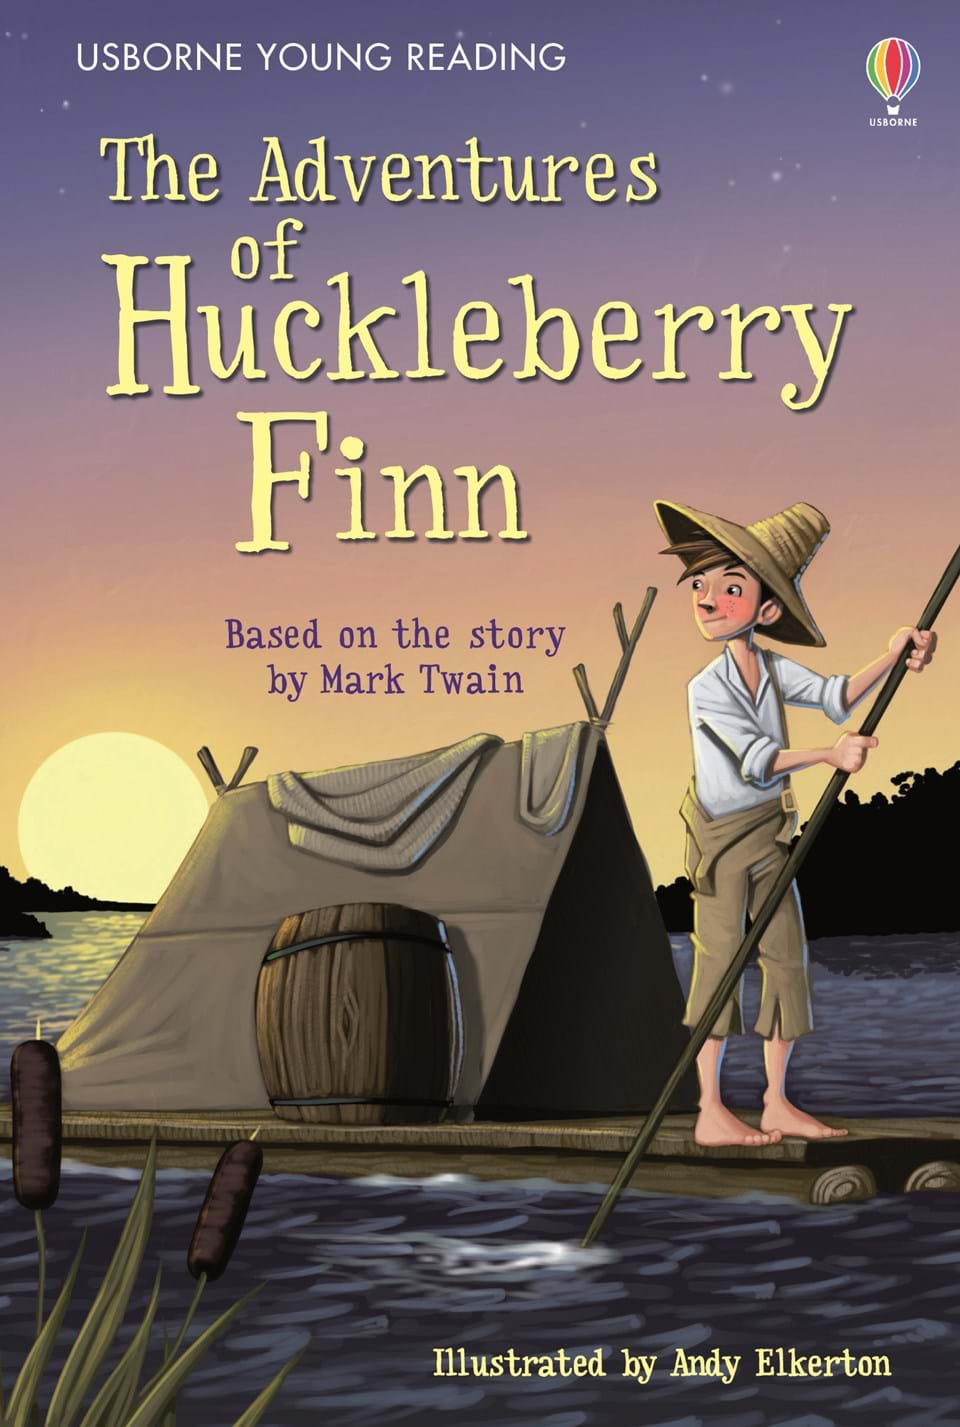 the three angles of the novel the adventure of huckleberry finn by mark twain Free summary and analysis of chapter 4 in mark twain's adventures of  huckleberry finn that won't make you snore  read the book: chapter 4  against all.